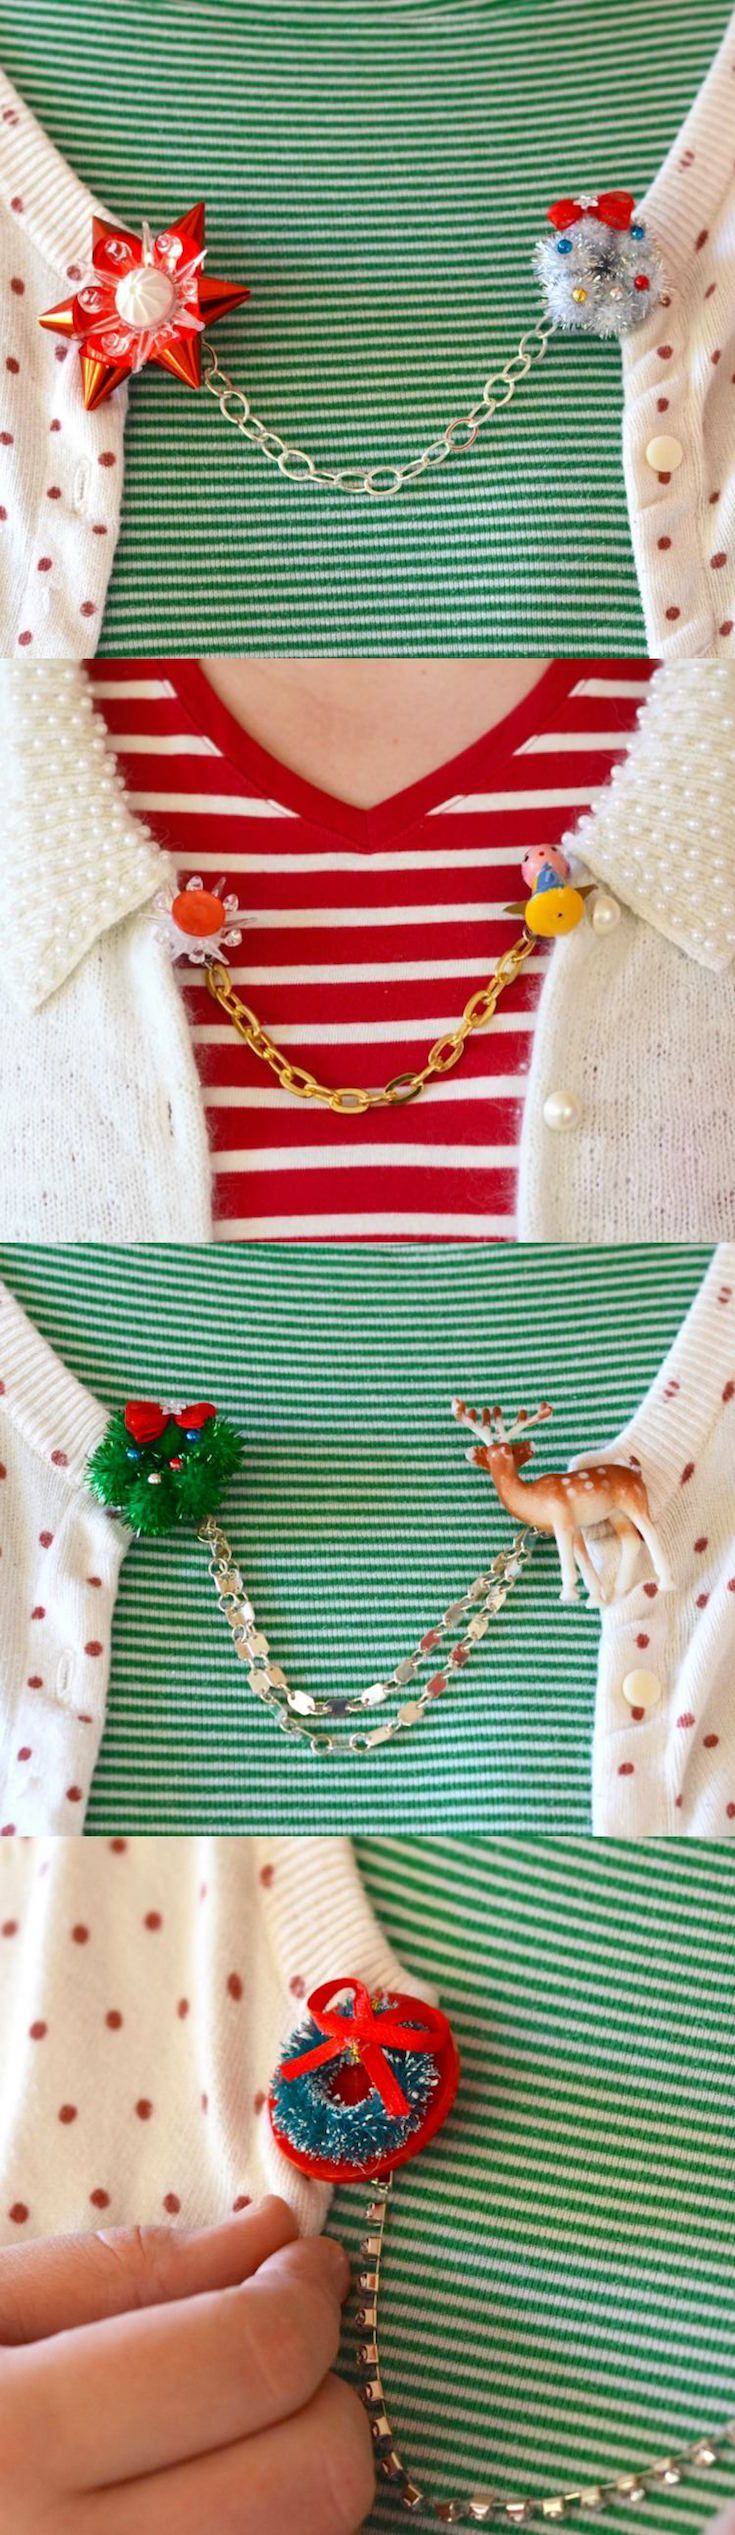 Use vintage or new holiday minis to create these unique DIY Christmas sweater clips! Perfect for embellishing your cardigans and other fashion items during the holidays. Learn how to make with this tutorial!